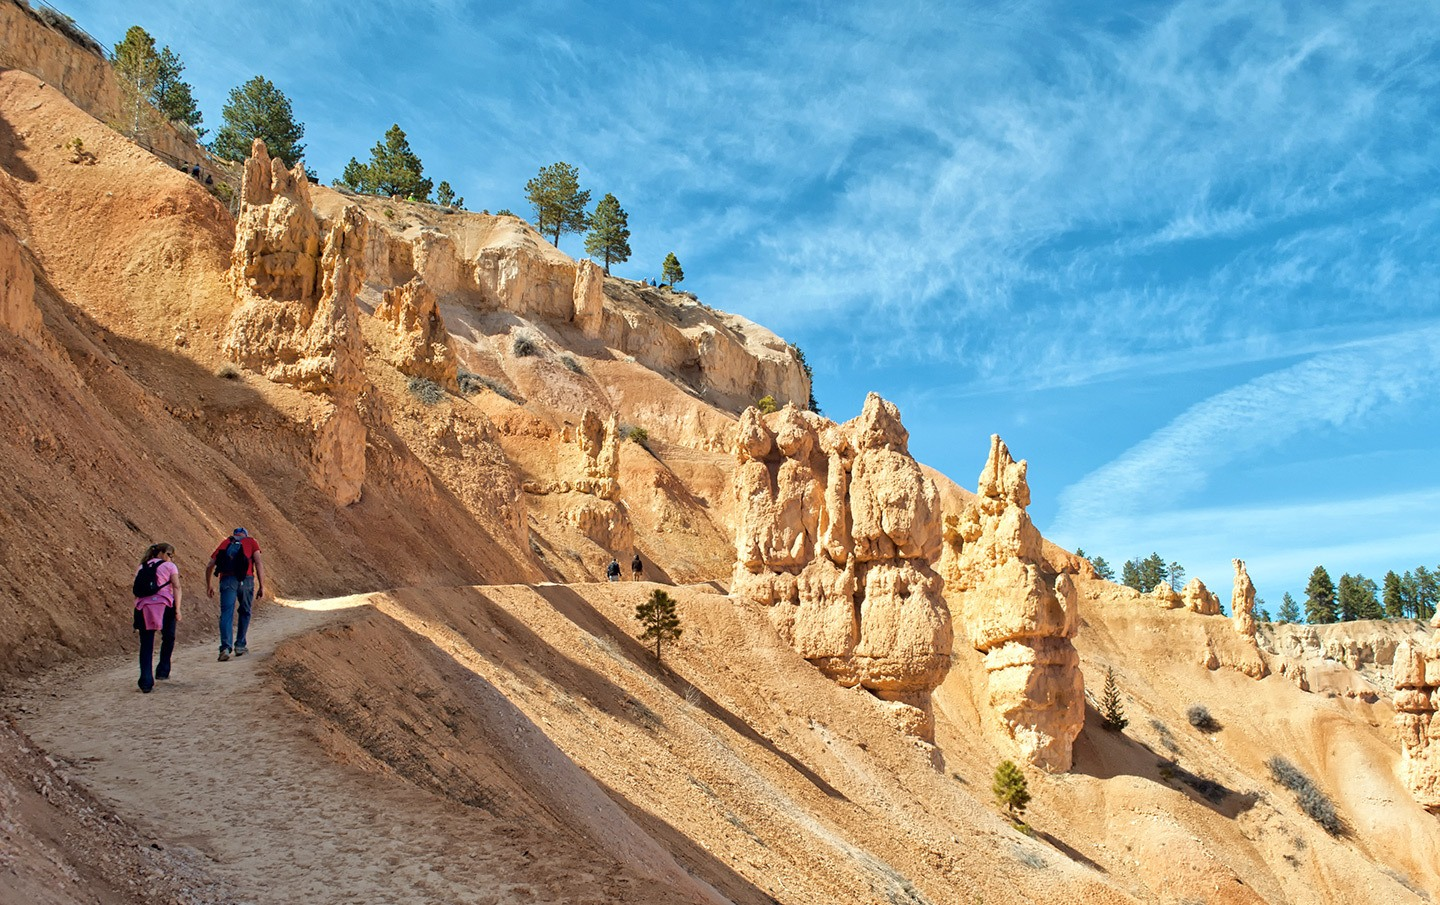 Navajo Loop Trail at Bryce Canyon National Park, Utah